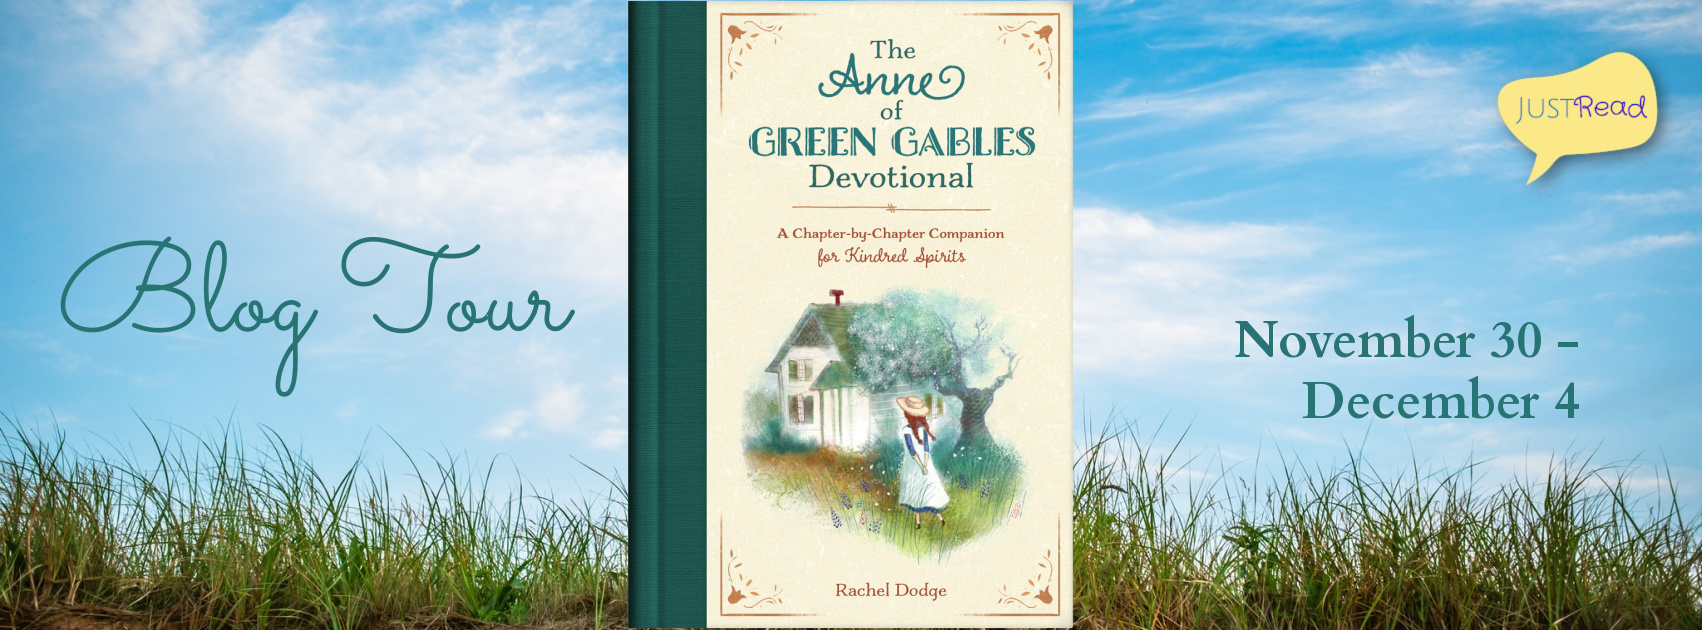 Welcome to the Anne of Green Gables Devotional Blog Tour & Giveaway!